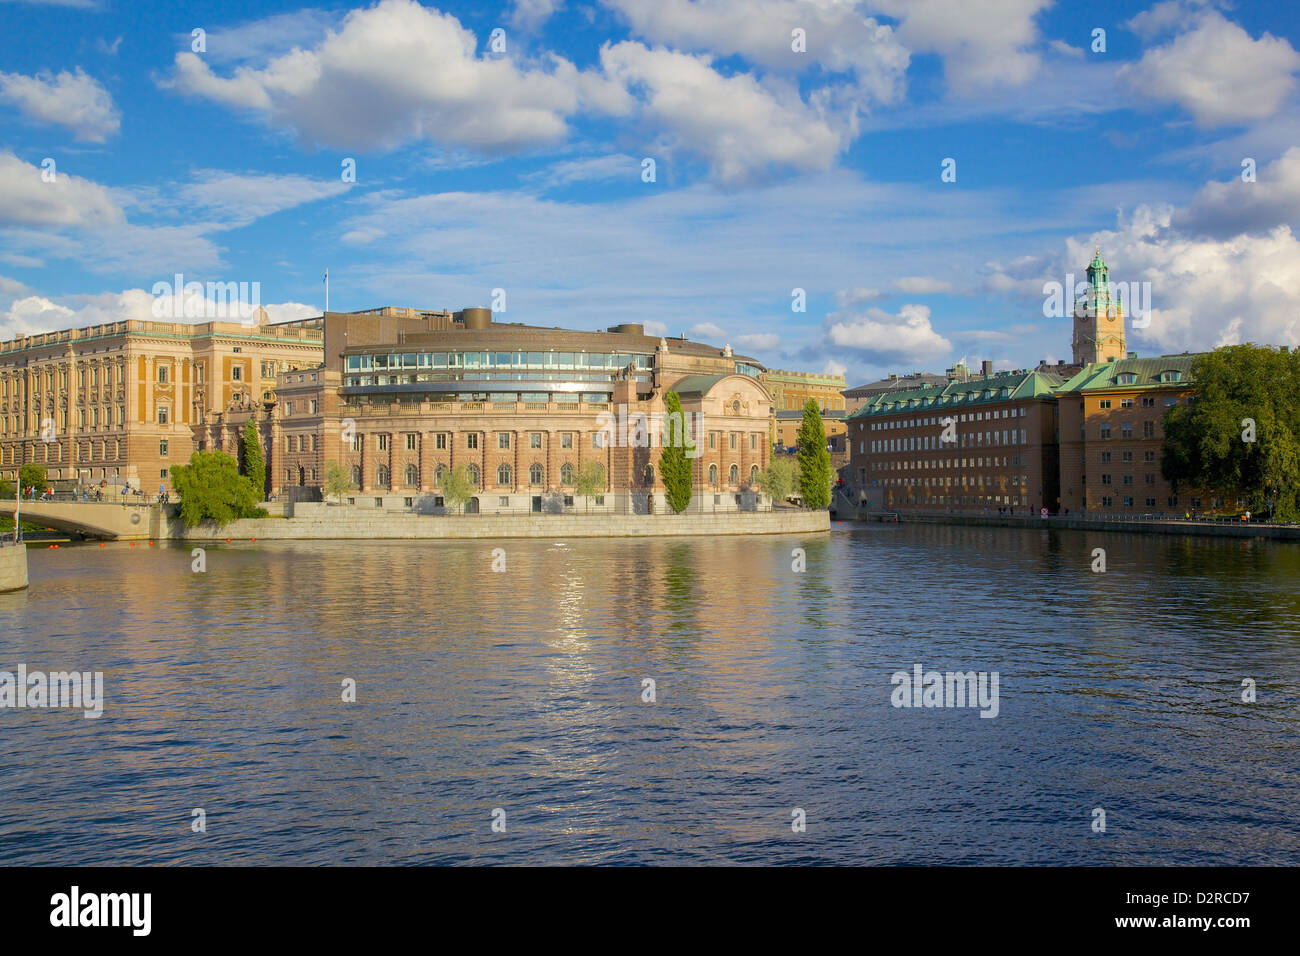 Swedish Parliament, Gamla Stan, Stockholm, Sweden, Europe - Stock Image